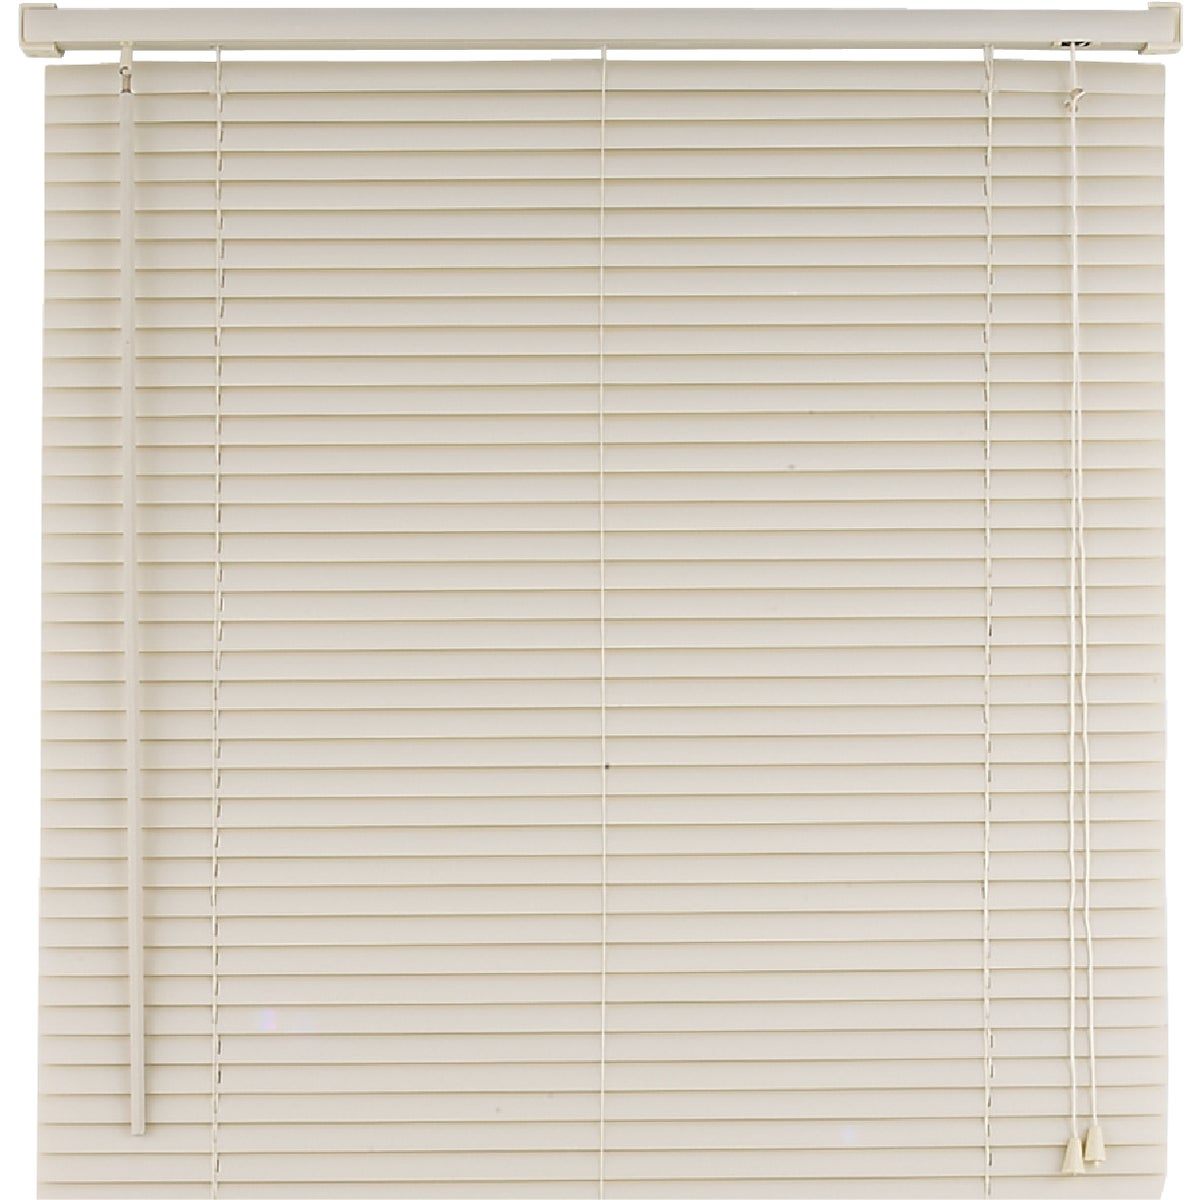 23X64 ALABASTER BLIND - 2364-453 by Lotus Wind Incom